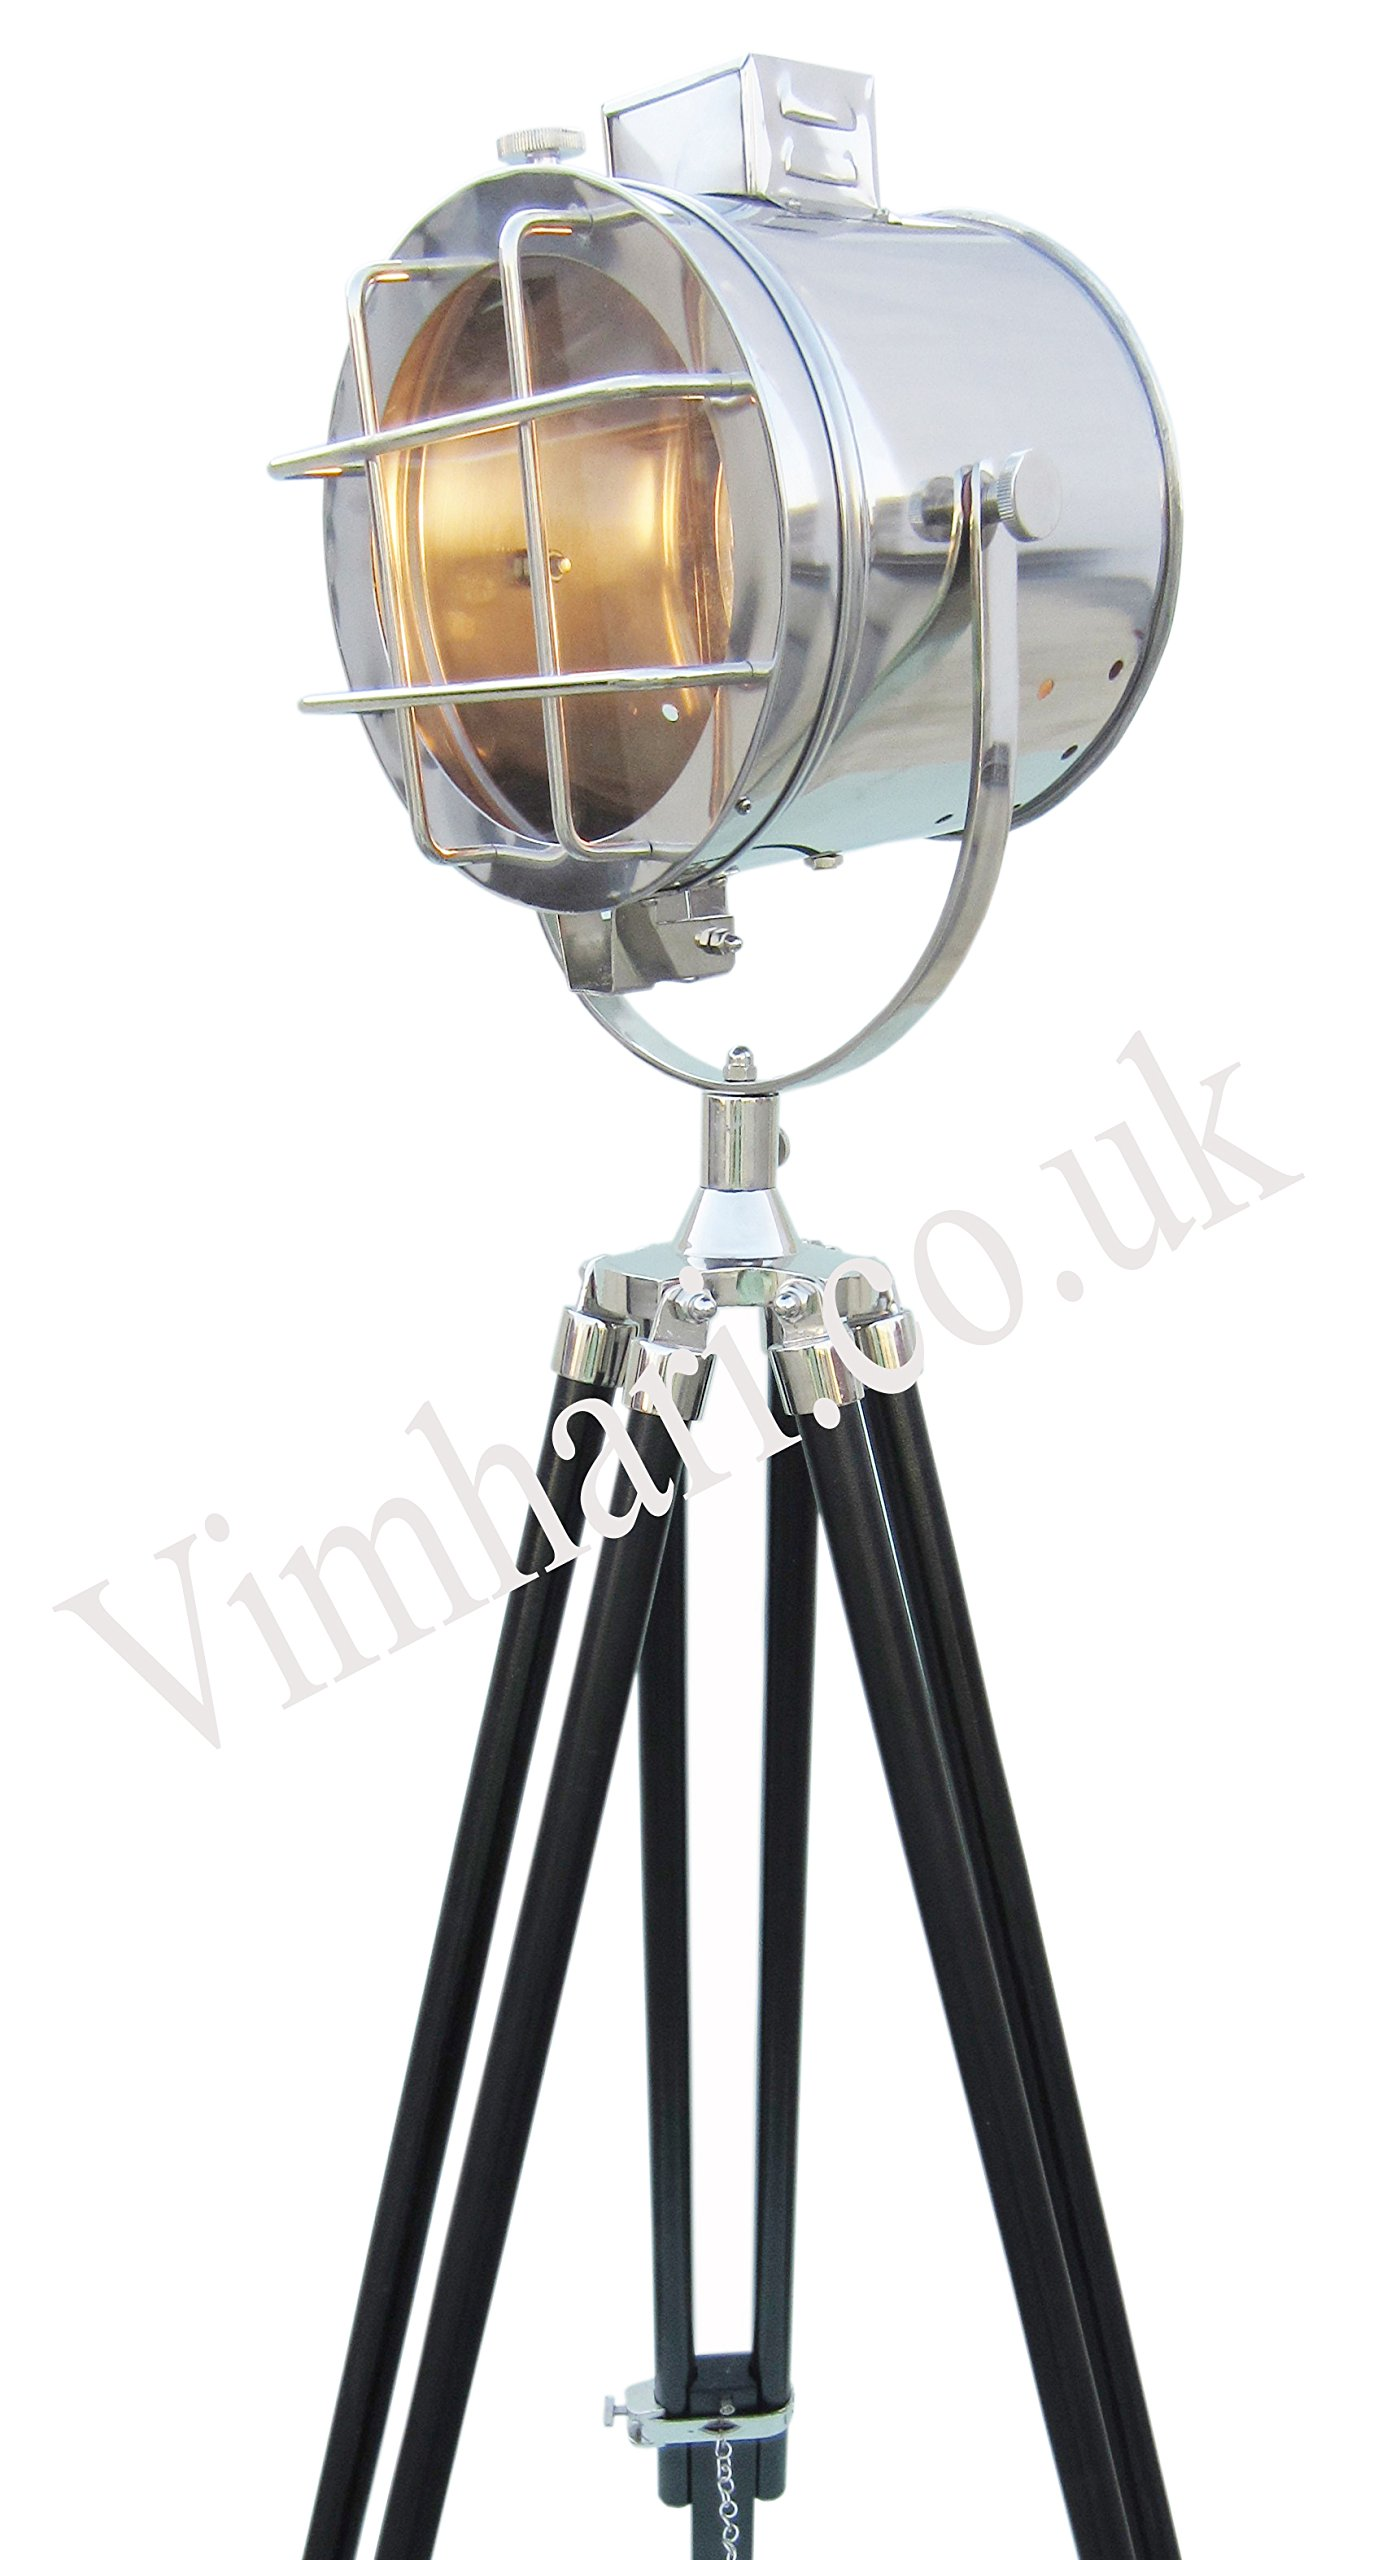 Vimhori Onlione Floor Lamp Home Decorative Vintage Design Tripod Lighting Searchlight Spot Light